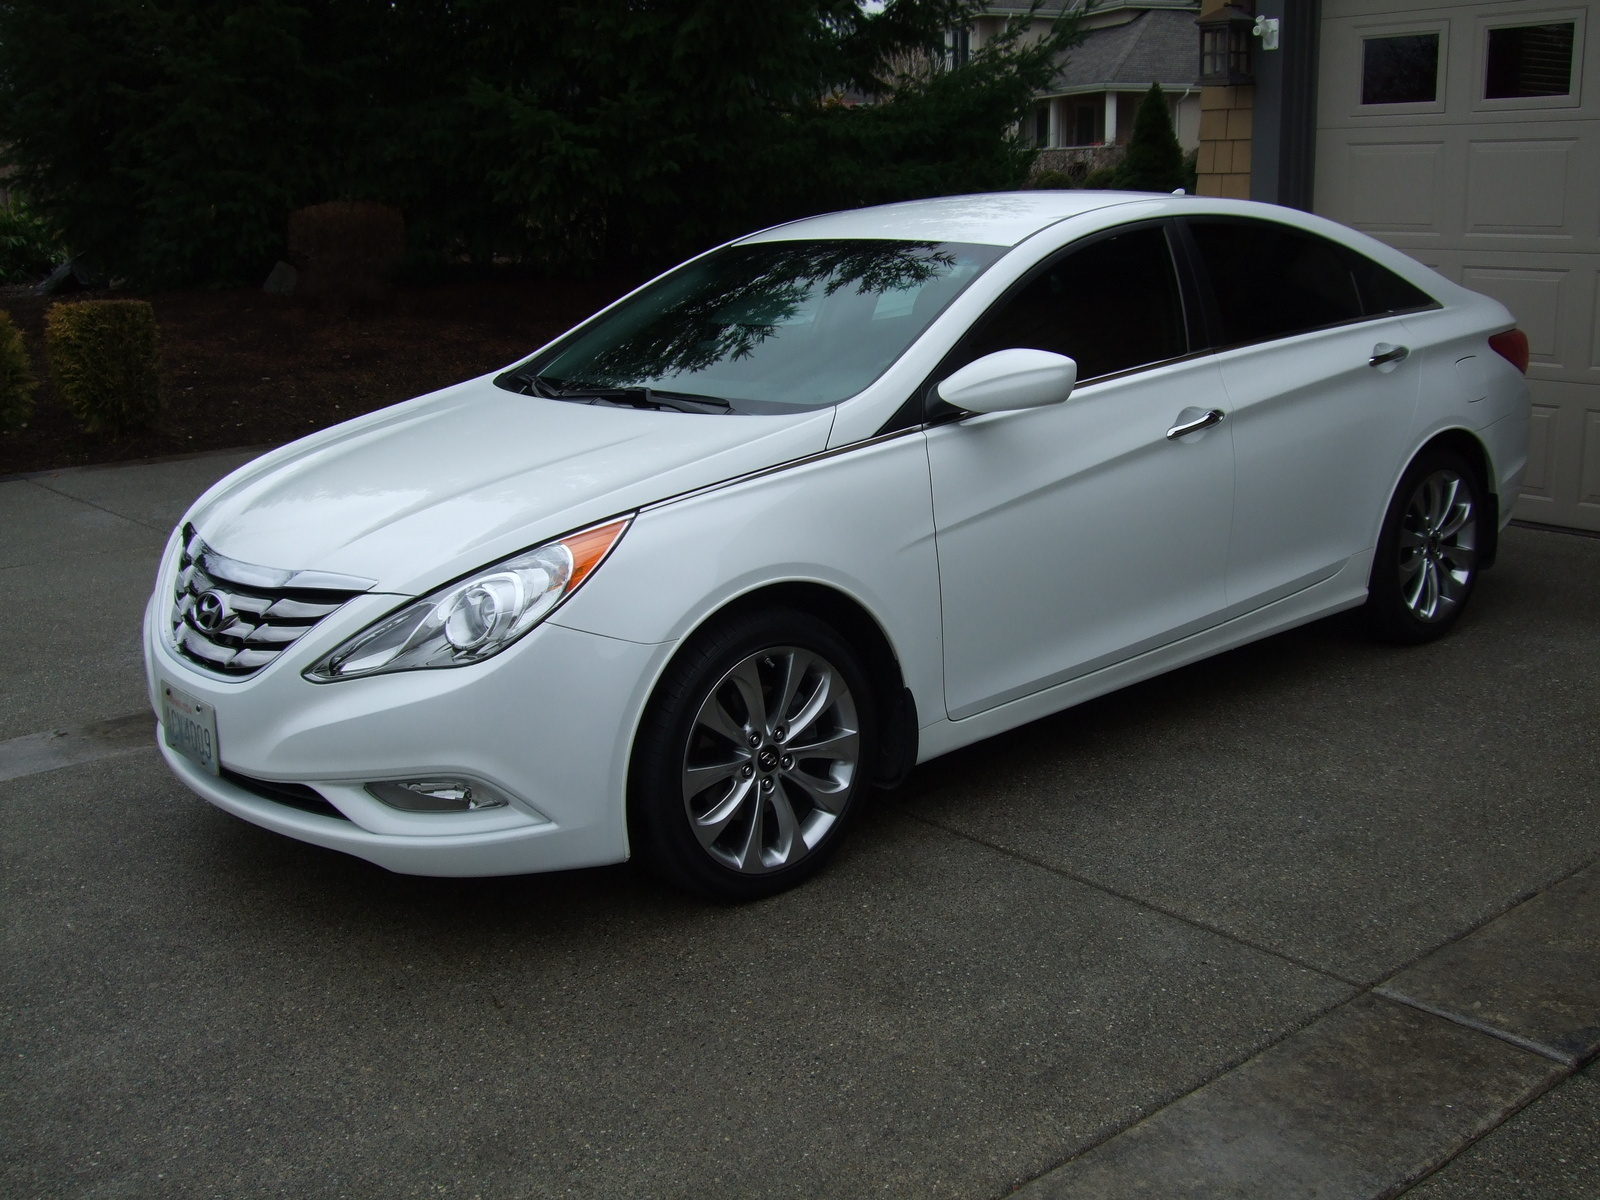 aa specs price international a overview limited hyundai t sonata prices intl